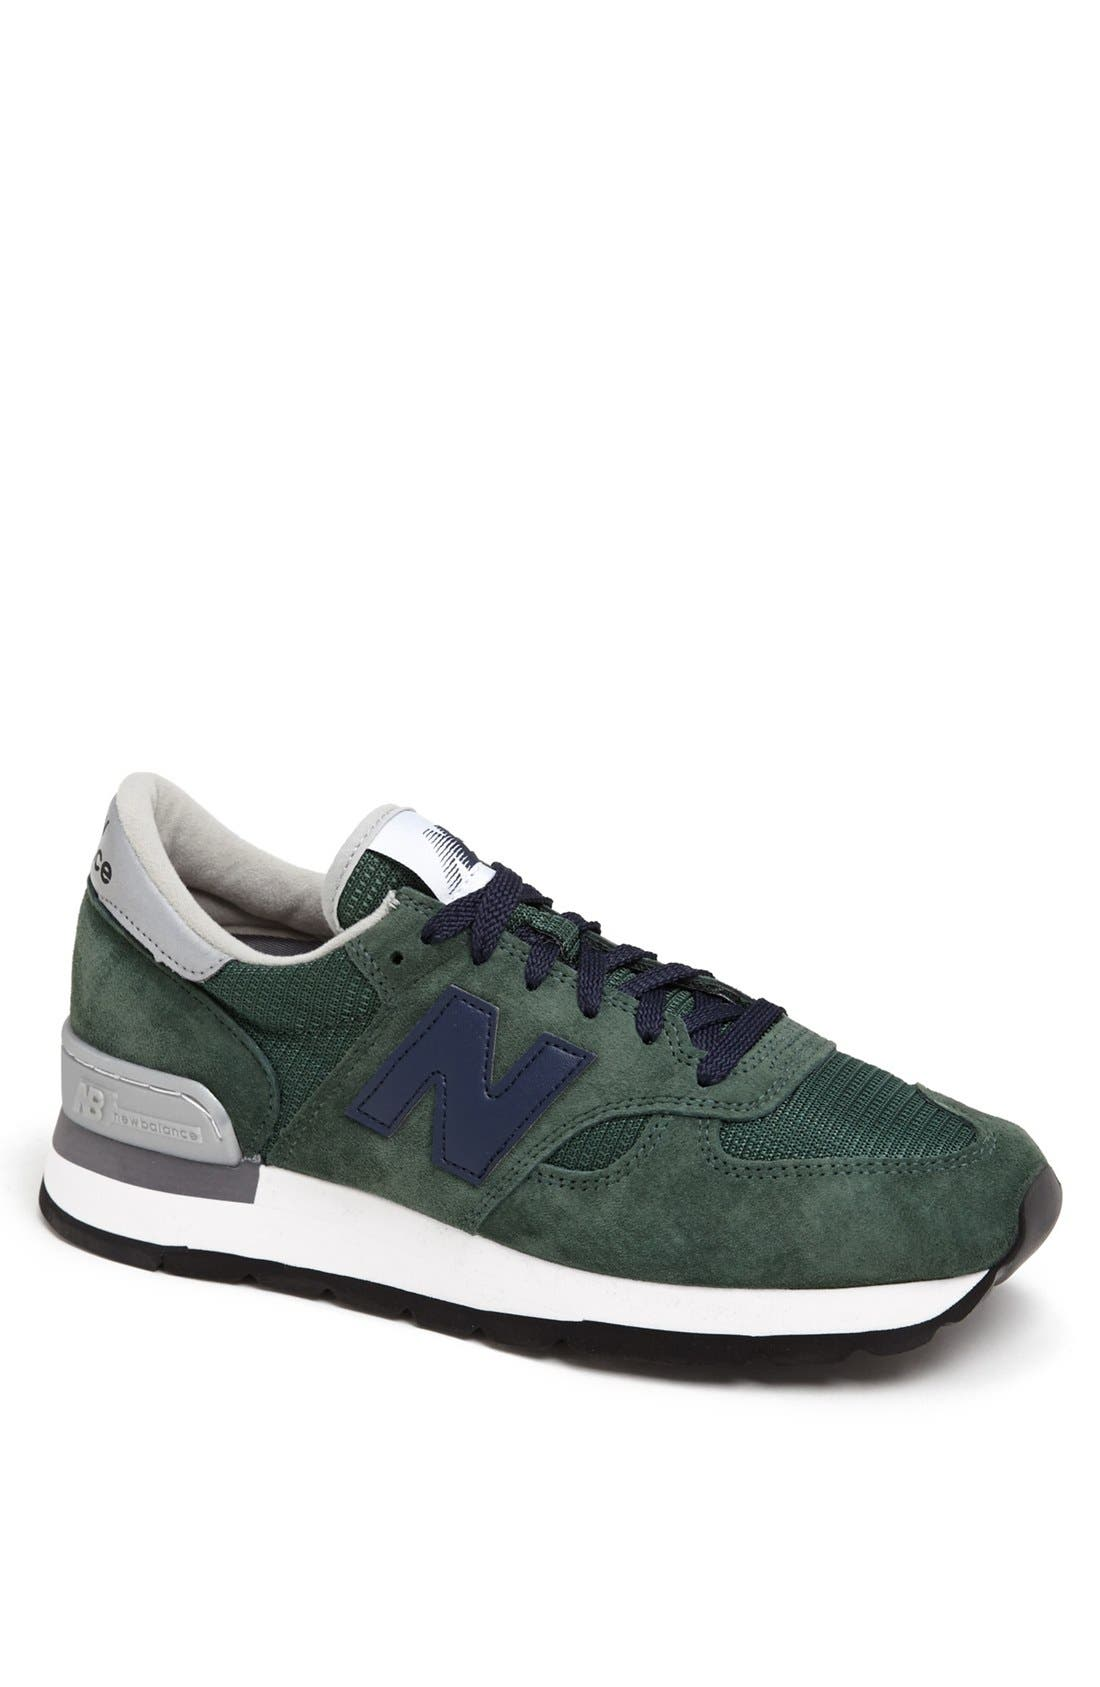 Alternate Image 1 Selected - New Balance '990' Sneaker (Men)